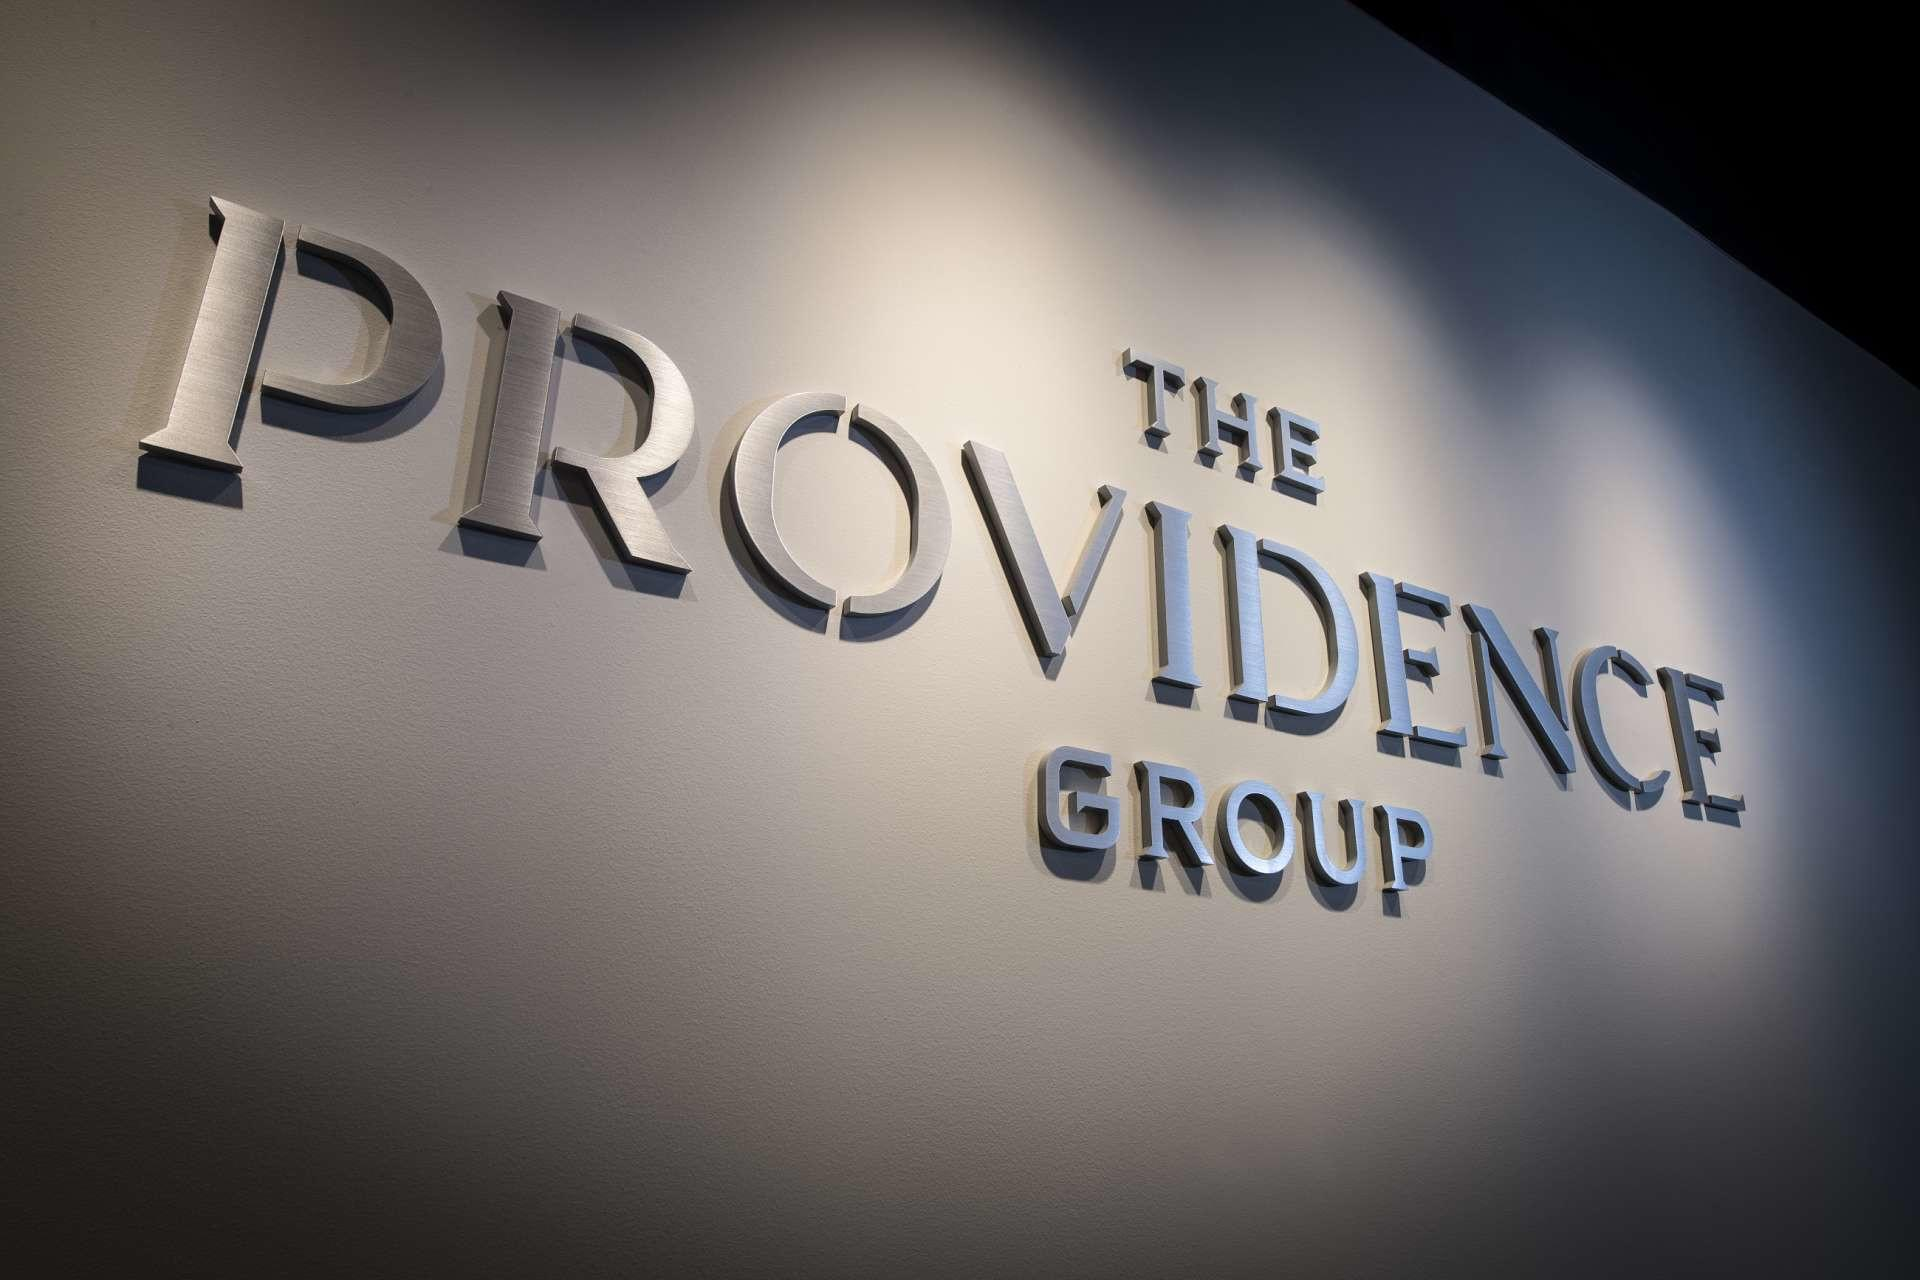 The Providence Group News